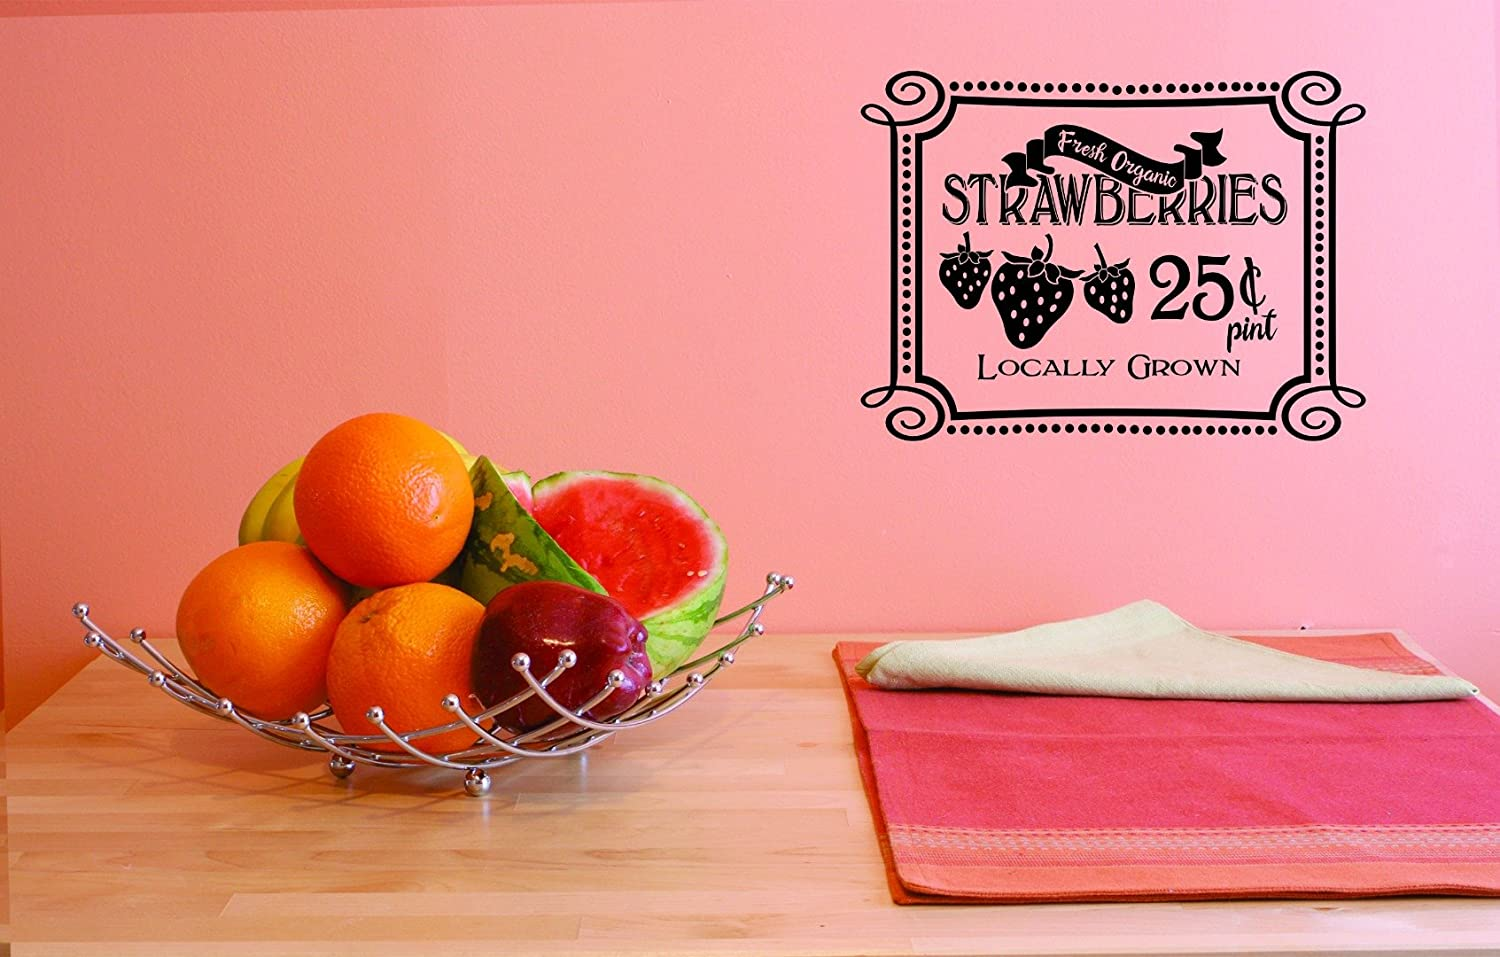 Design with Vinyl JER 1768 1 Hot Organic Fresh Decals New Strawb Super Special Max 70% OFF SALE held